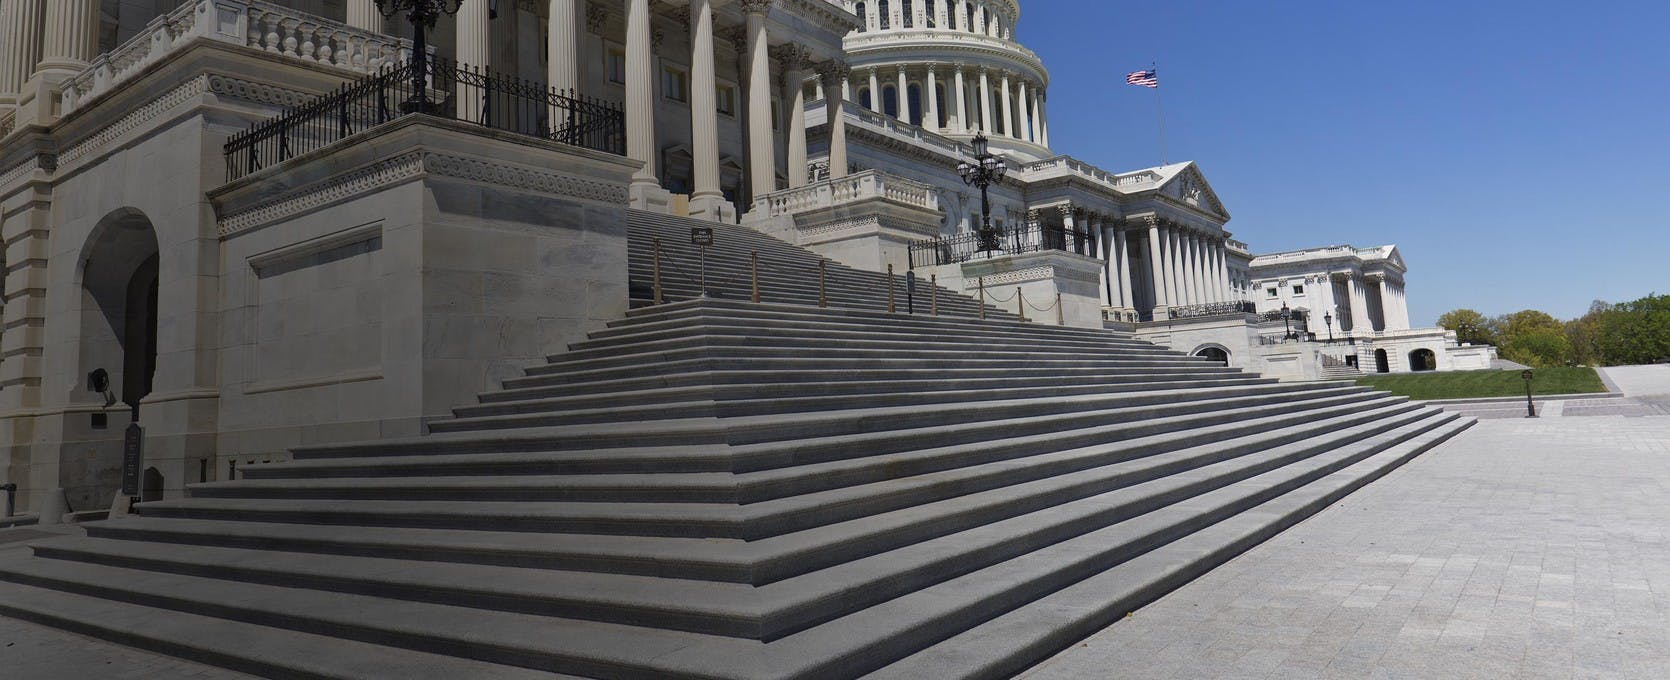 Steps of the United States Capitol building